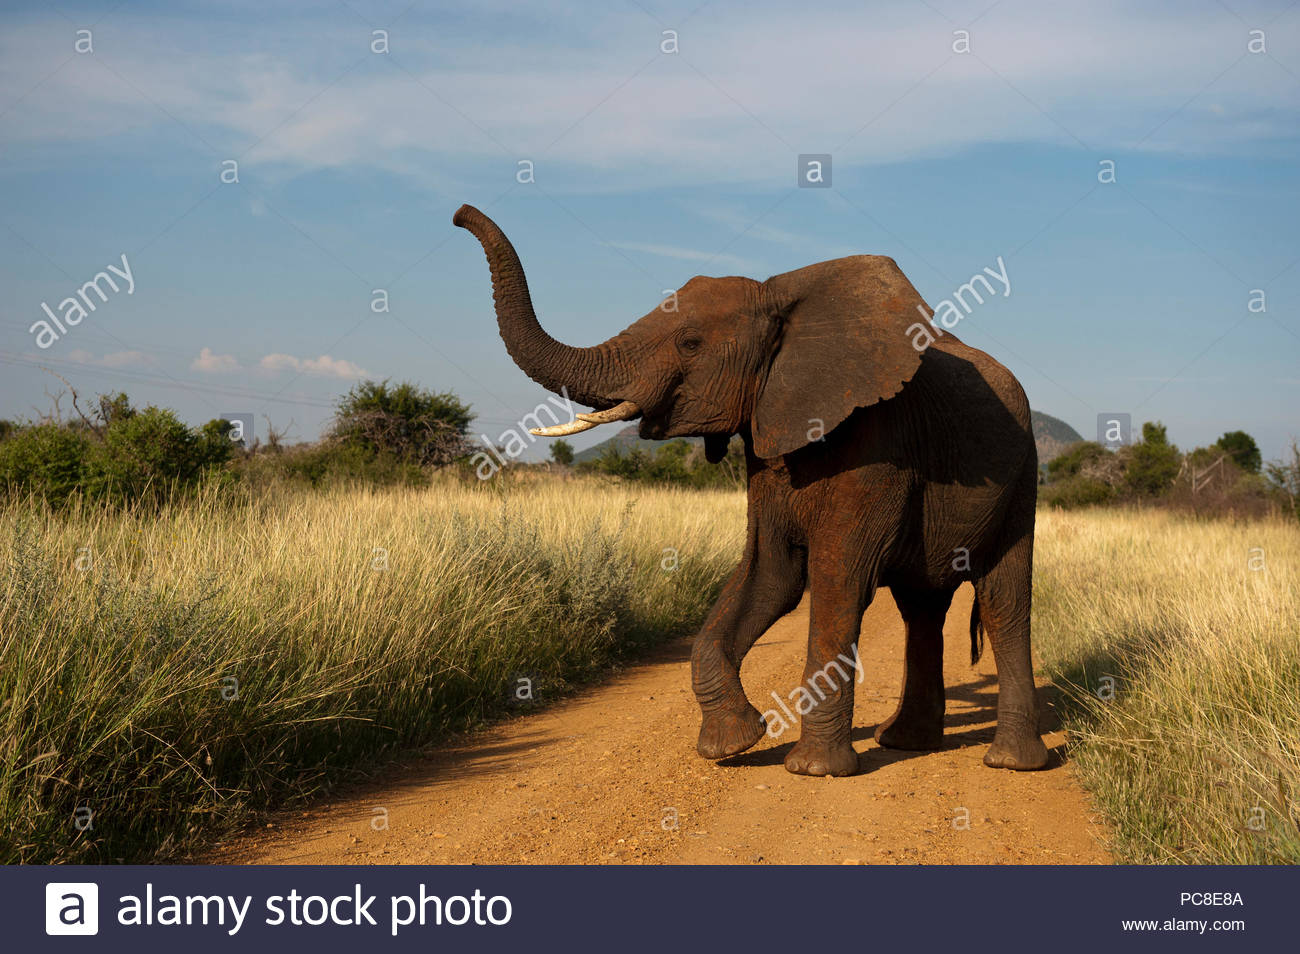 An African elephant in the Madikwe Game Preserve, South Africa. - Stock Image